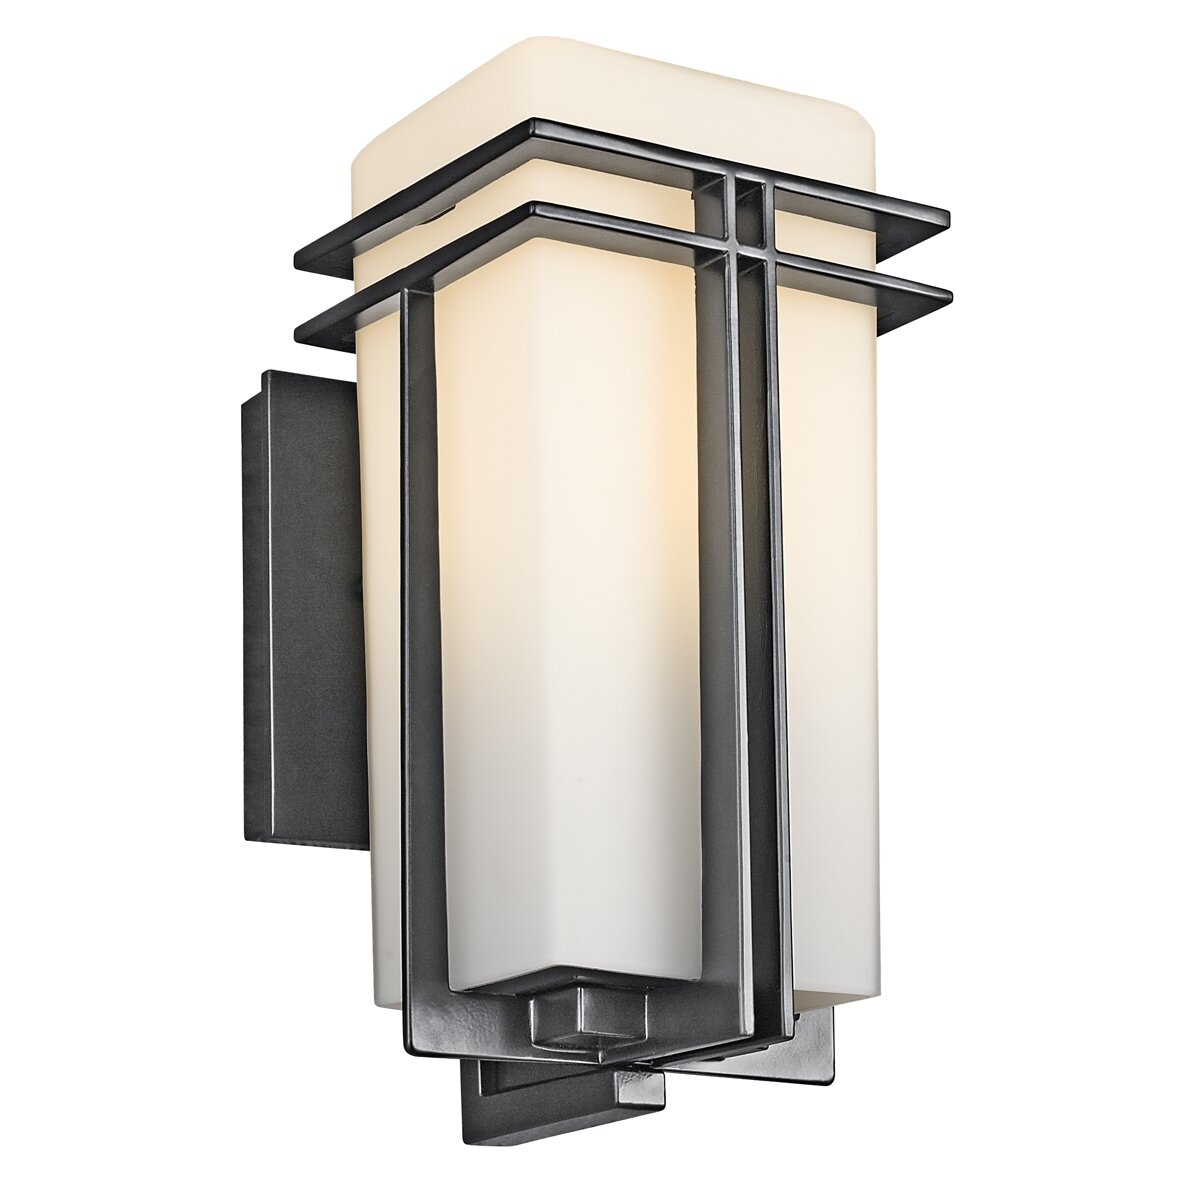 Kichler Tremillo 1 Light Outdoor Sconce Reviews Wayfair